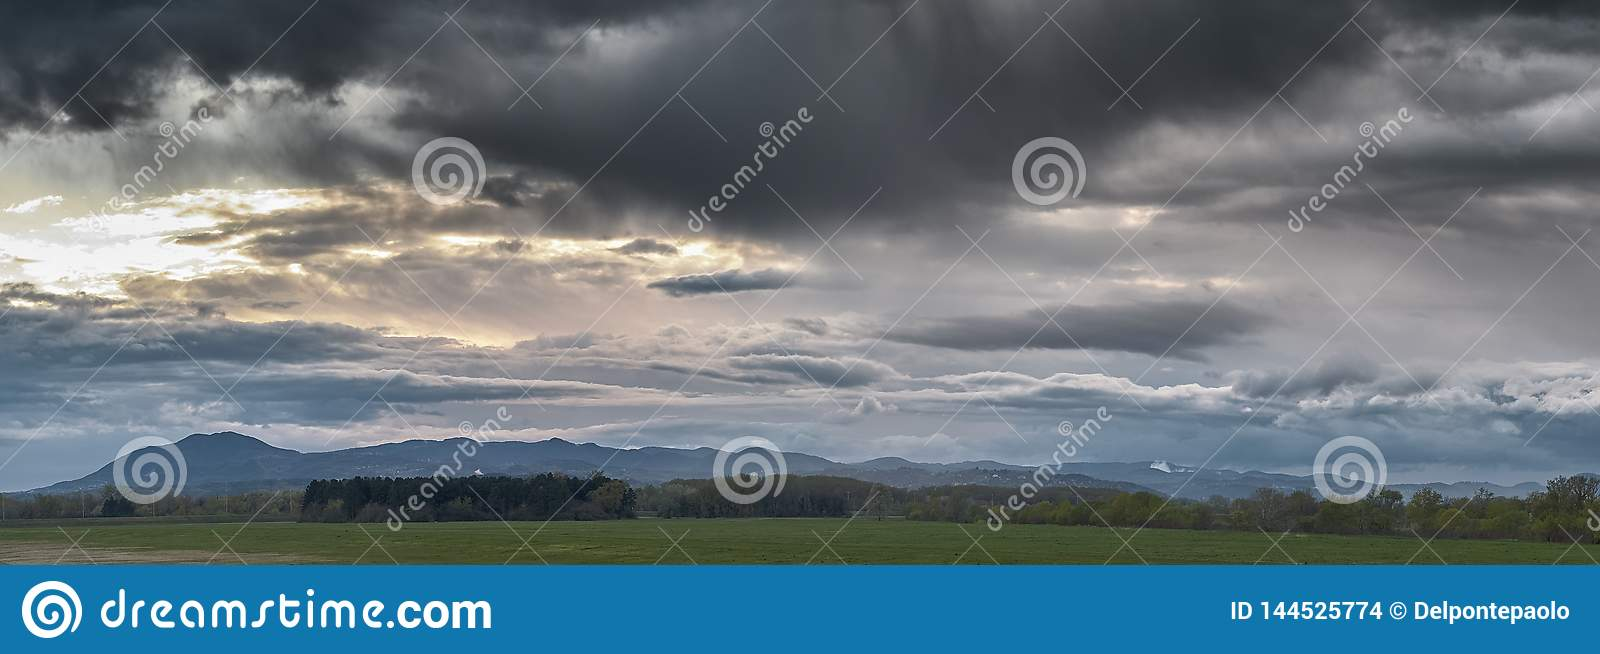 Sunset on a dramatic clouds sky over a meadow and small pine forest with hills in background, near Zagreb